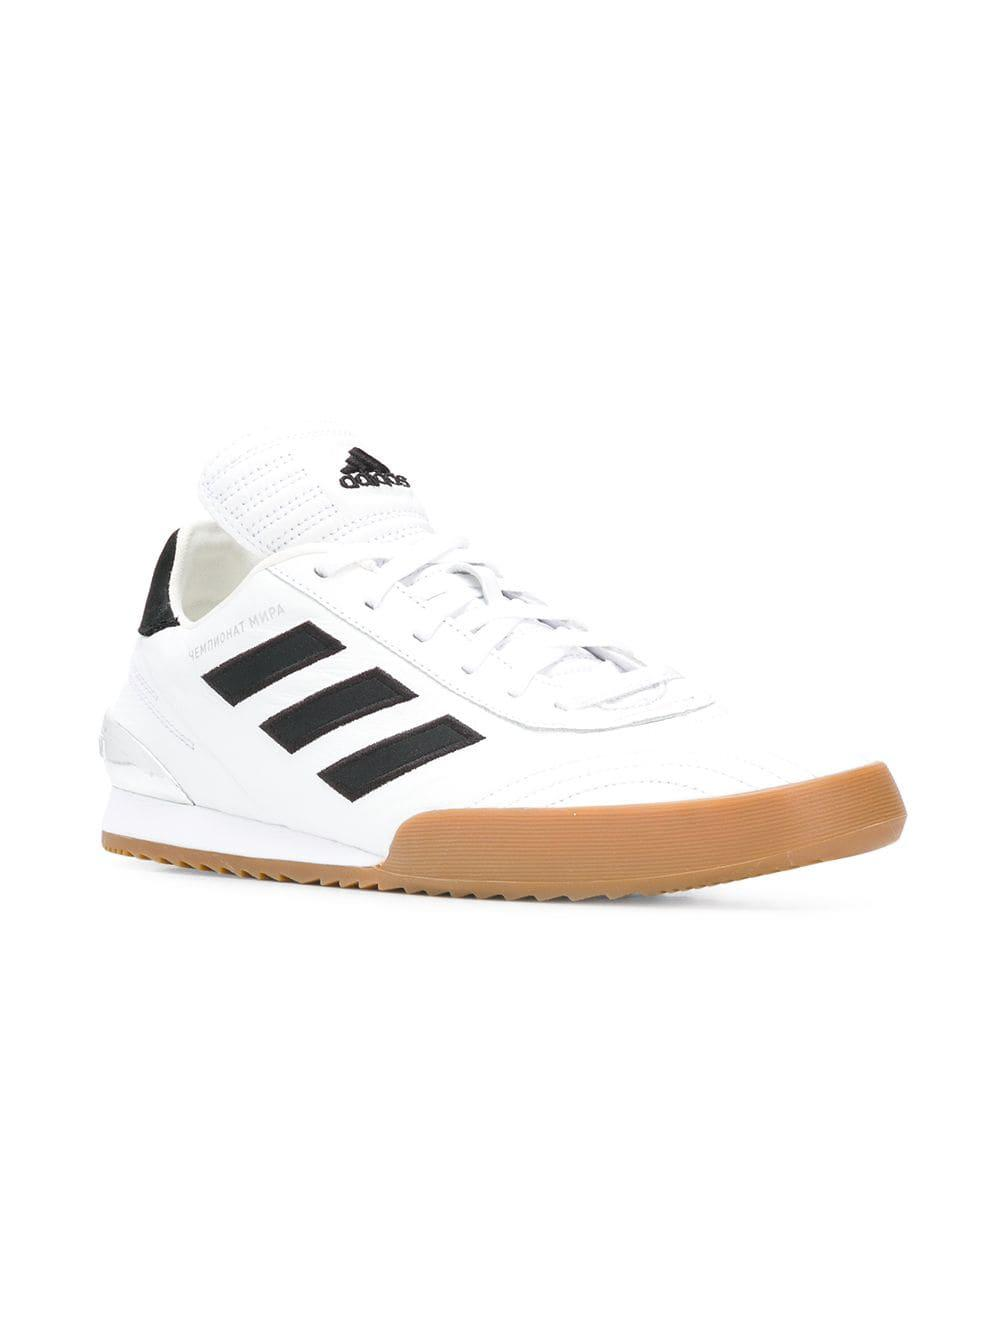 low priced 50fea e122a Lyst - Gosha Rubchinskiy Lace-up Sneakers in White for Men -